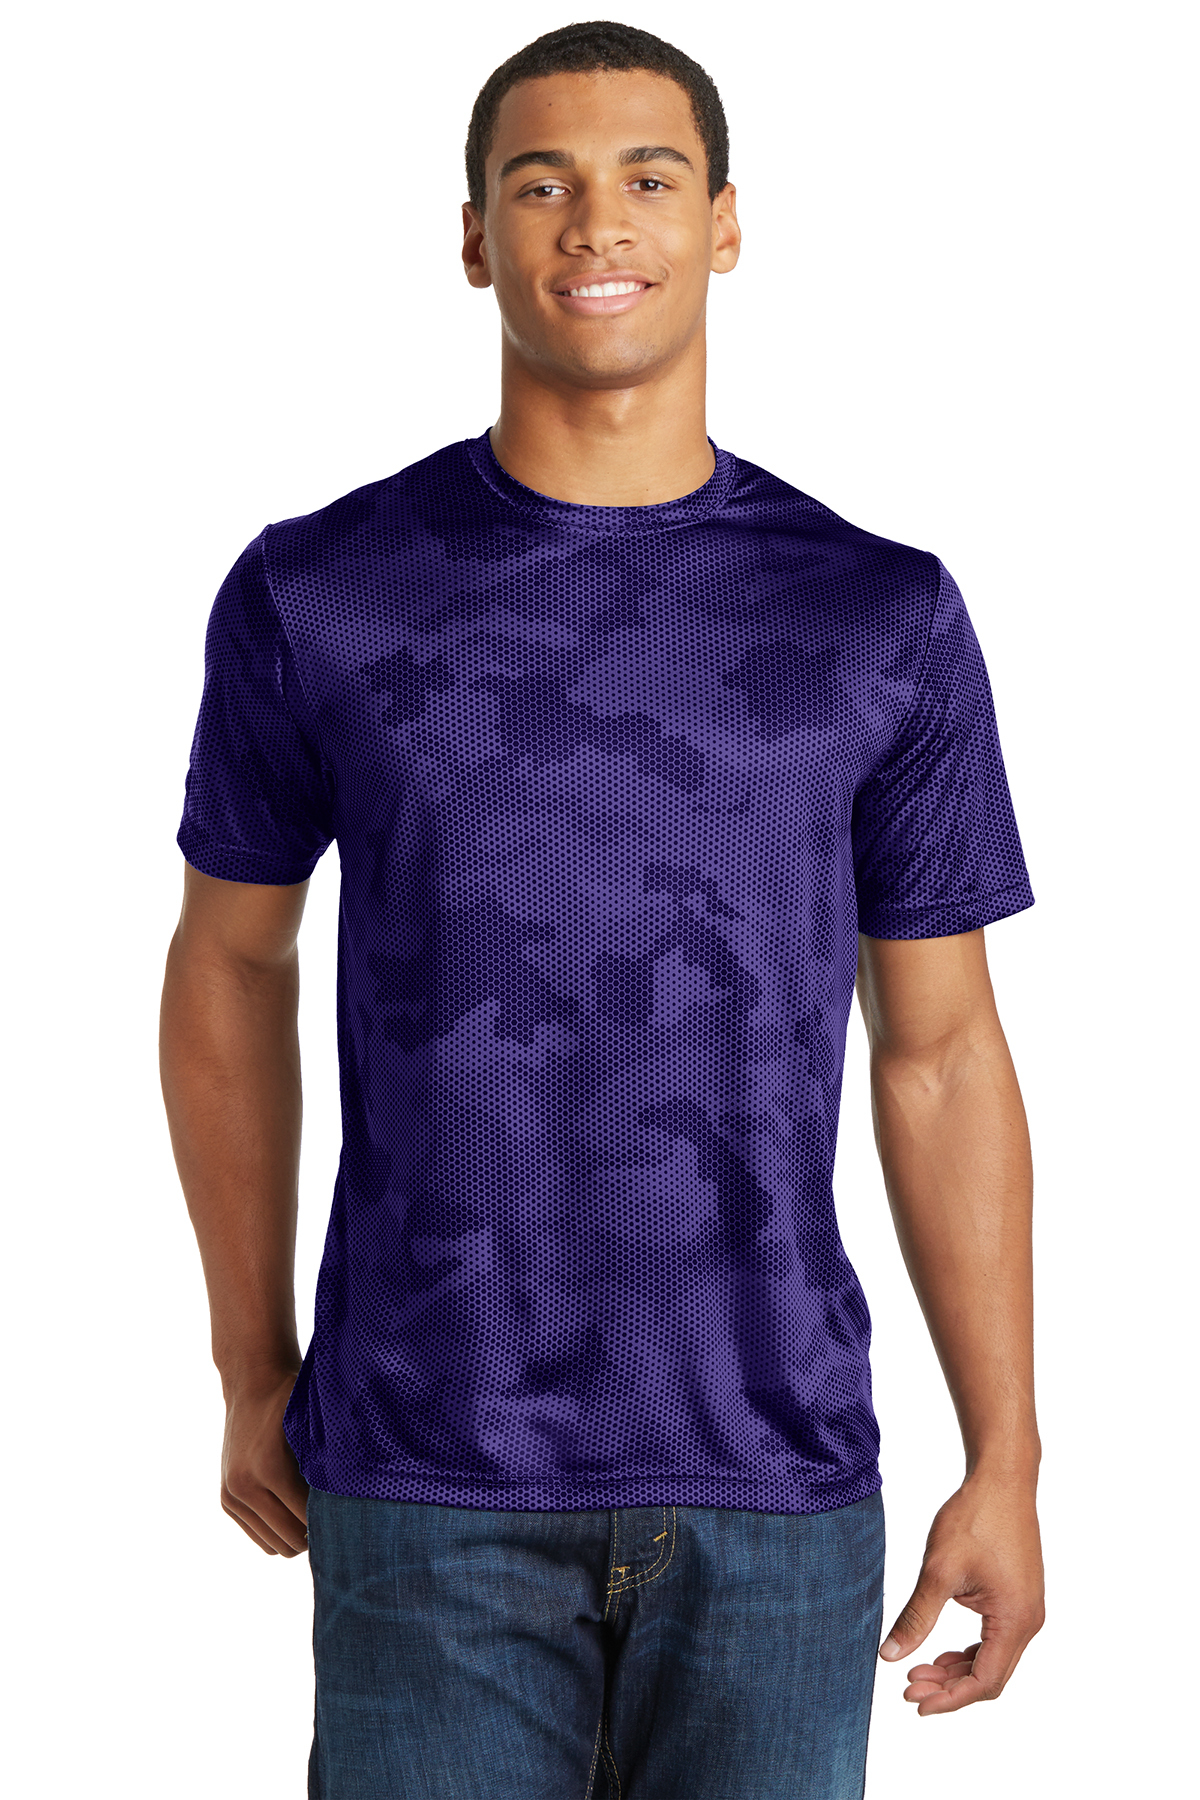 Sport Tek Camohex Tee Performance T Shirts Sport Tek New and used items, cars, real estate, jobs, services, vacation rentals and more virtually anywhere in ontario. sport tek camohex tee performance